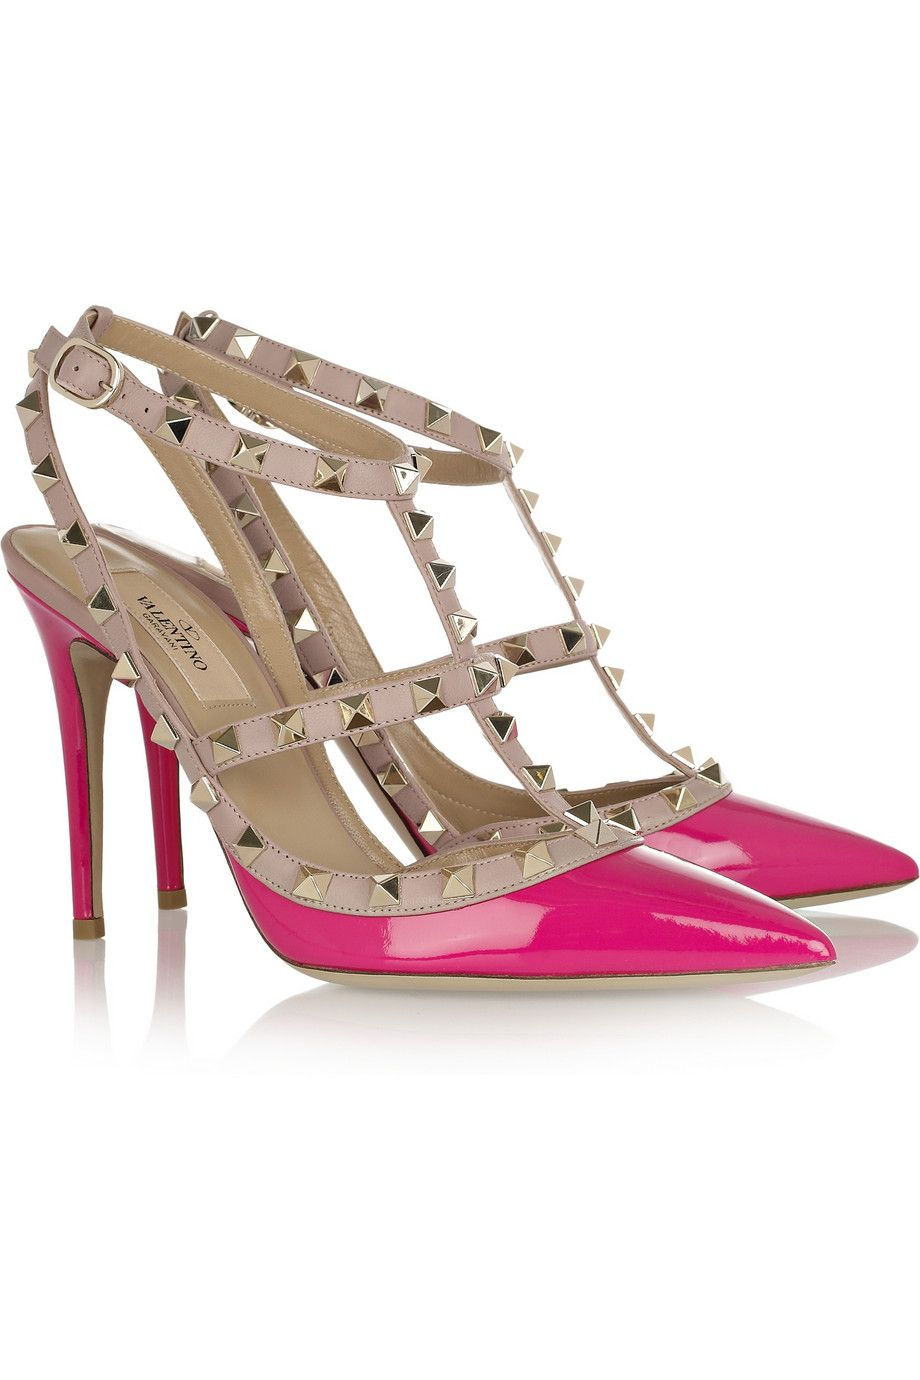 ee74e846db3a Valentino The Rockstud patent-leather pumps